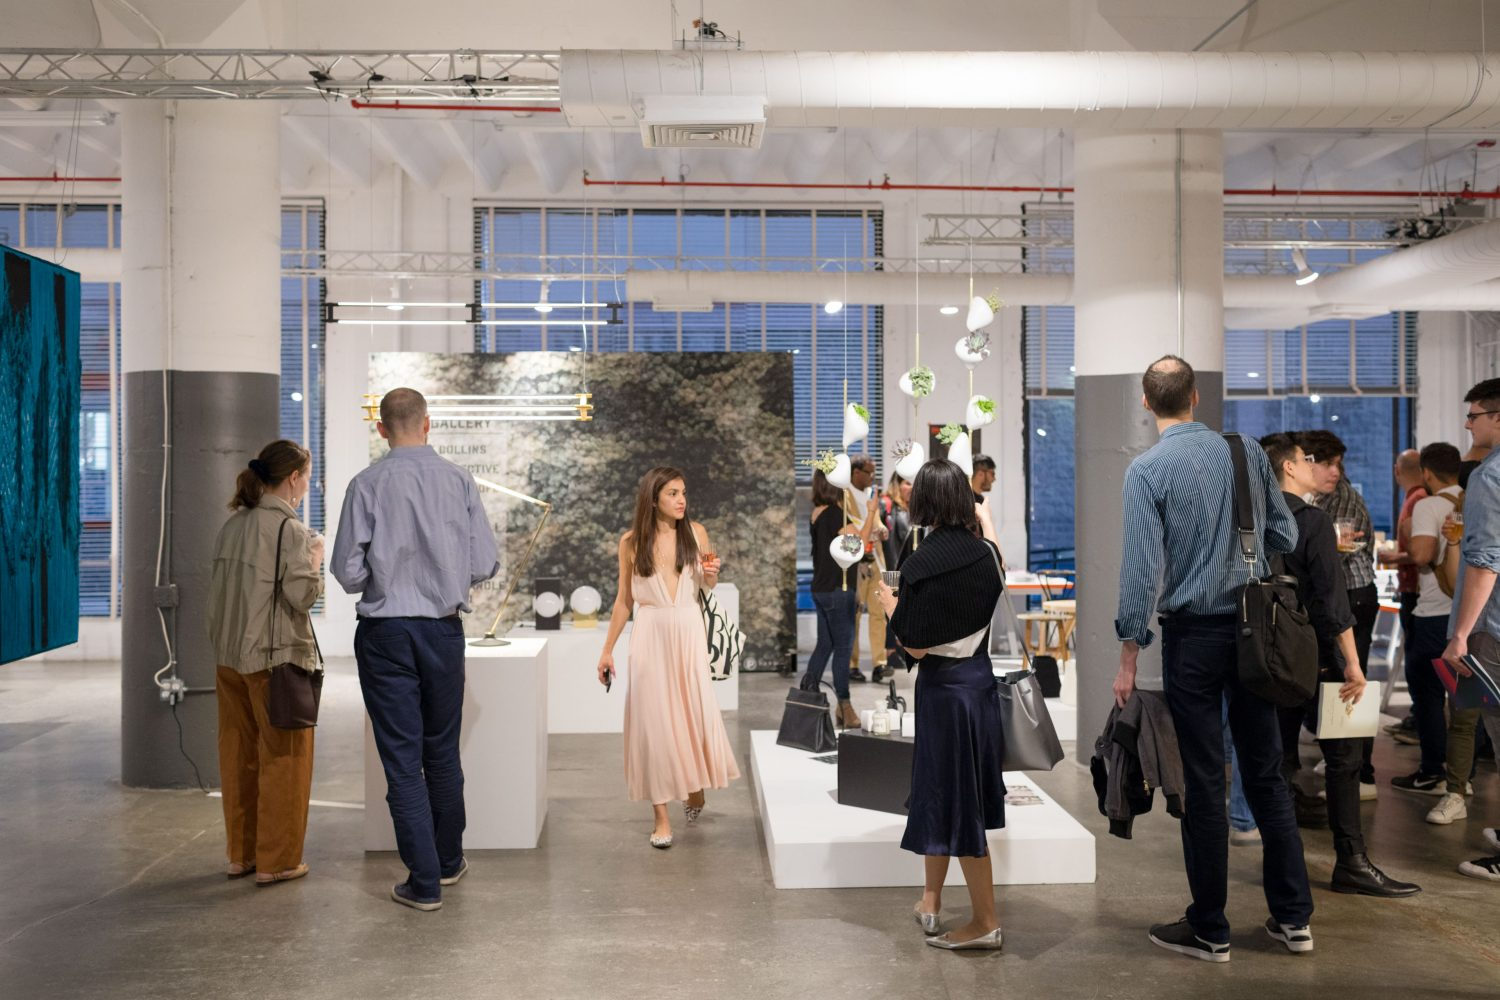 WantedDesign Brooklyn Event Guide wanteddesign brooklyn event guide WANTEDDESIGN BROOKLYN 2019 EVENT GUIDE Opening Brooklyn 10